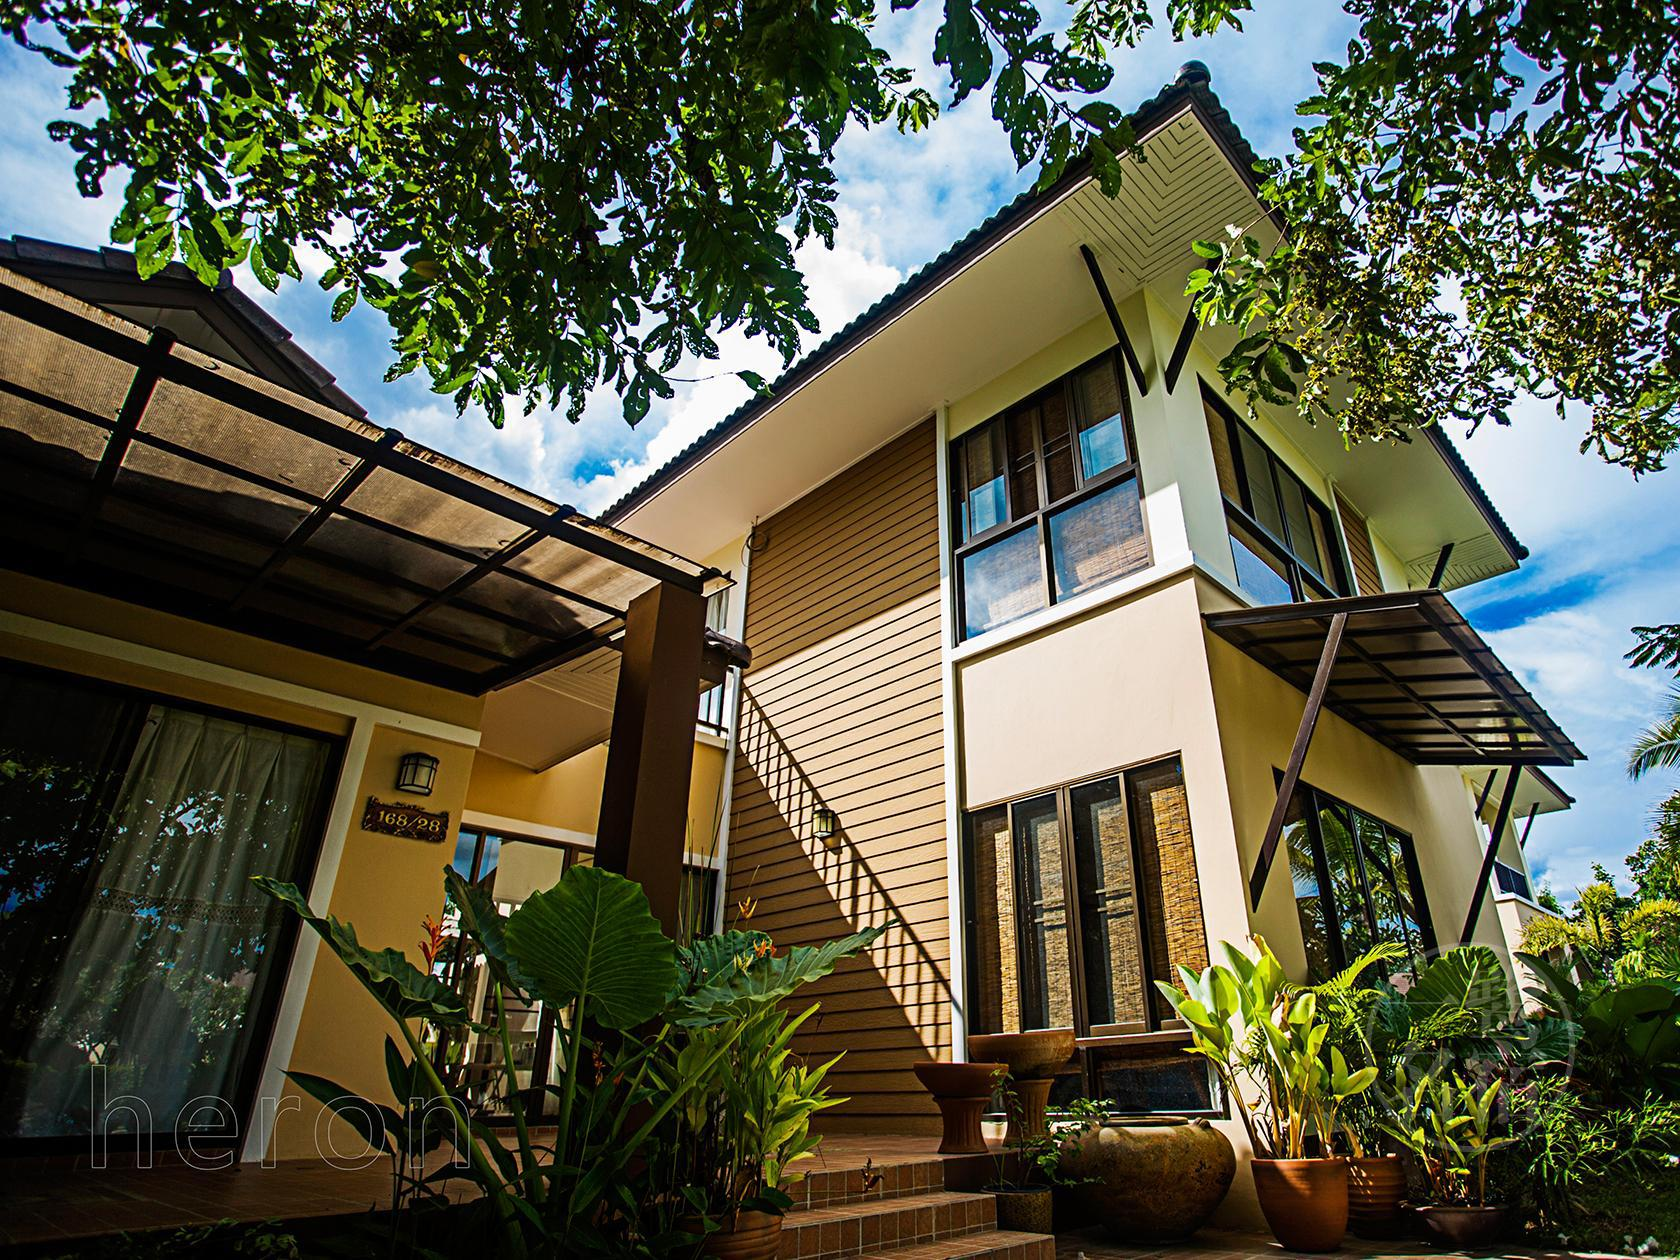 Airone Thai style Villa,3 bed near Golf with paddy Airone Thai style Villa,3 bed near Golf with paddy